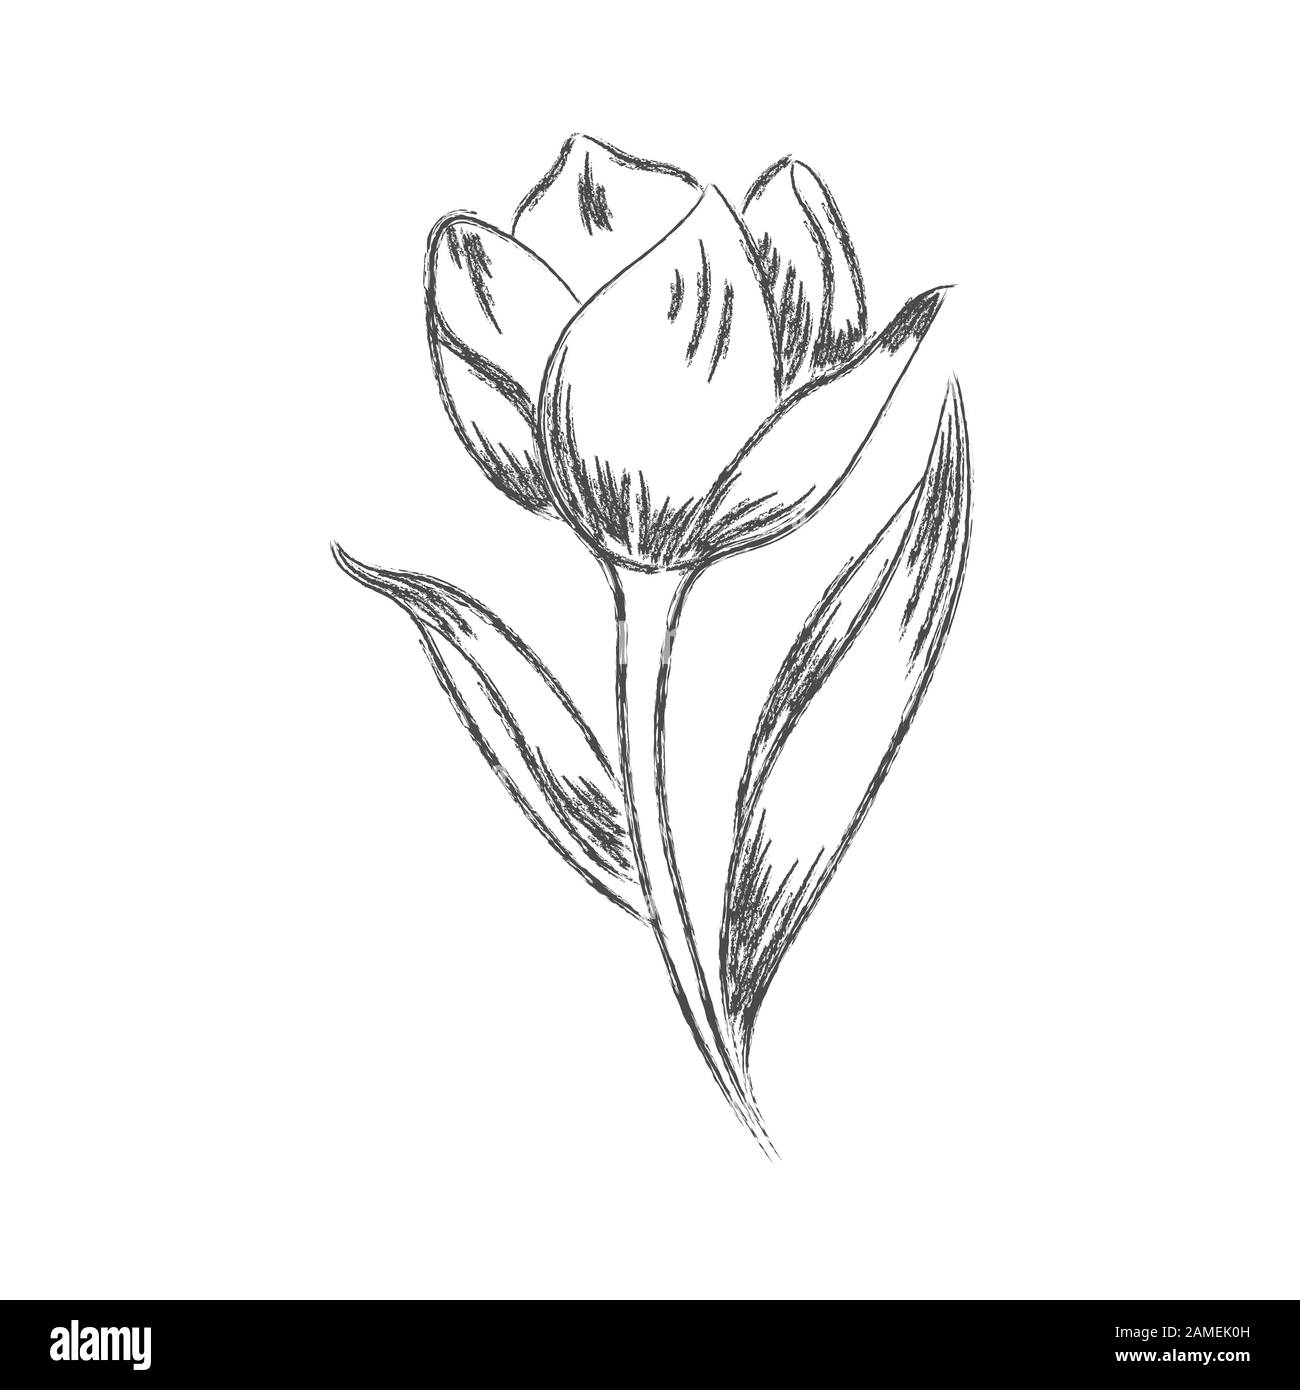 Vector Pencil Drawing Of A Flower With Leaves Isolated On A White